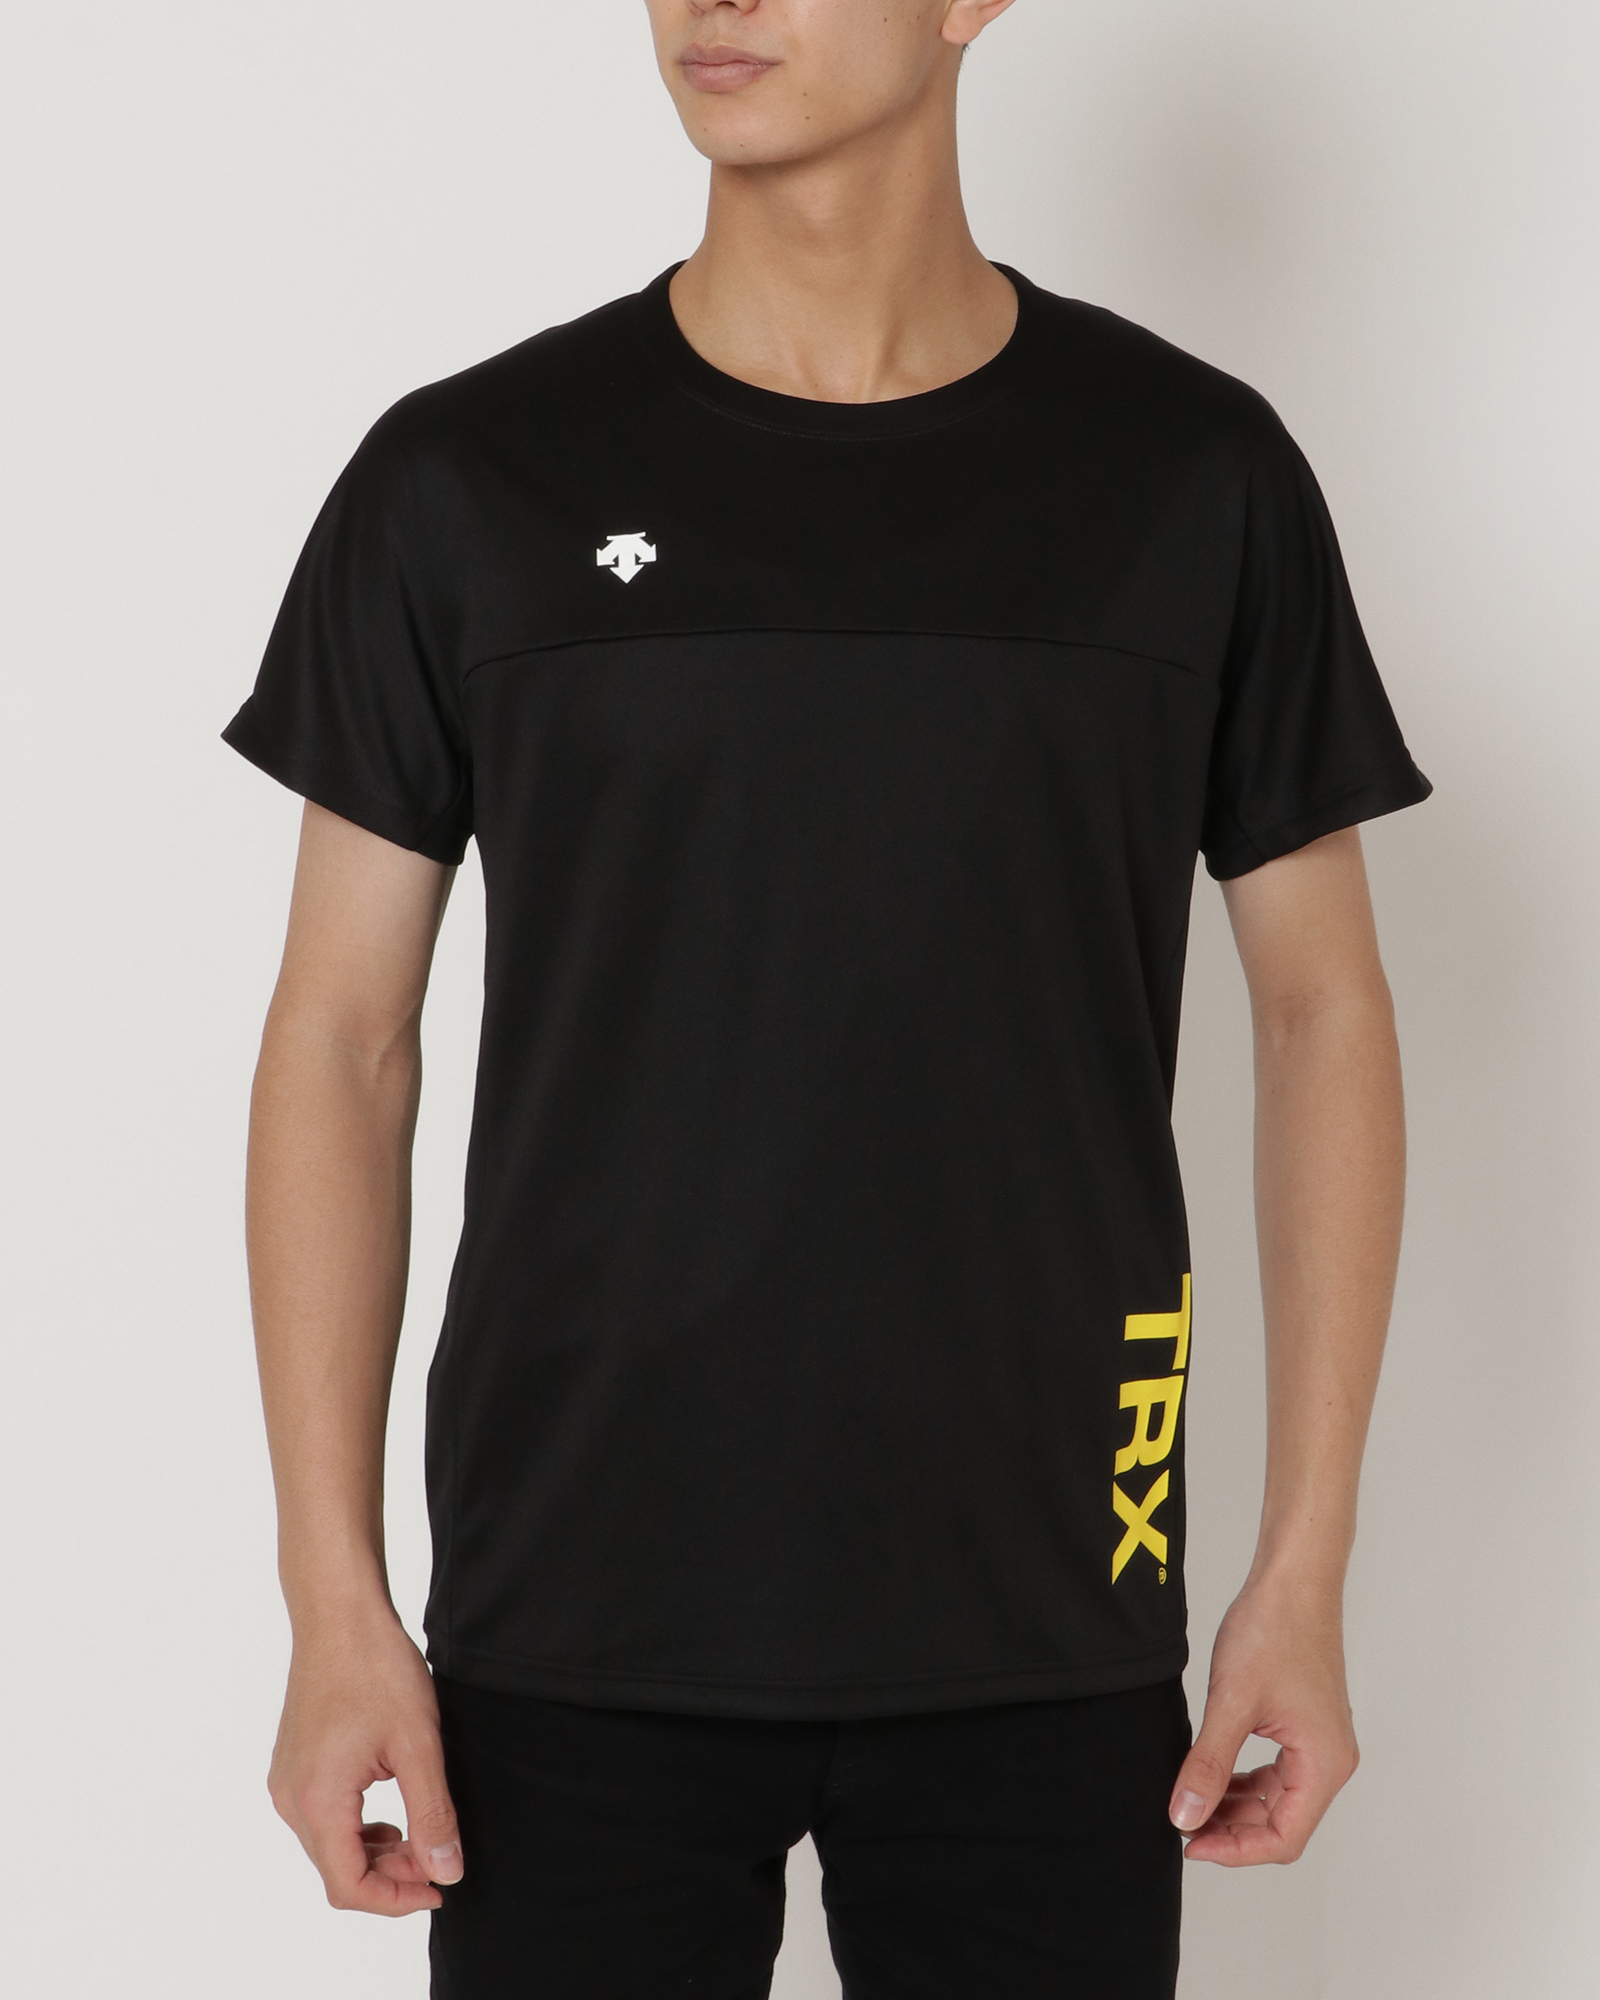 sunscreen t-shirts